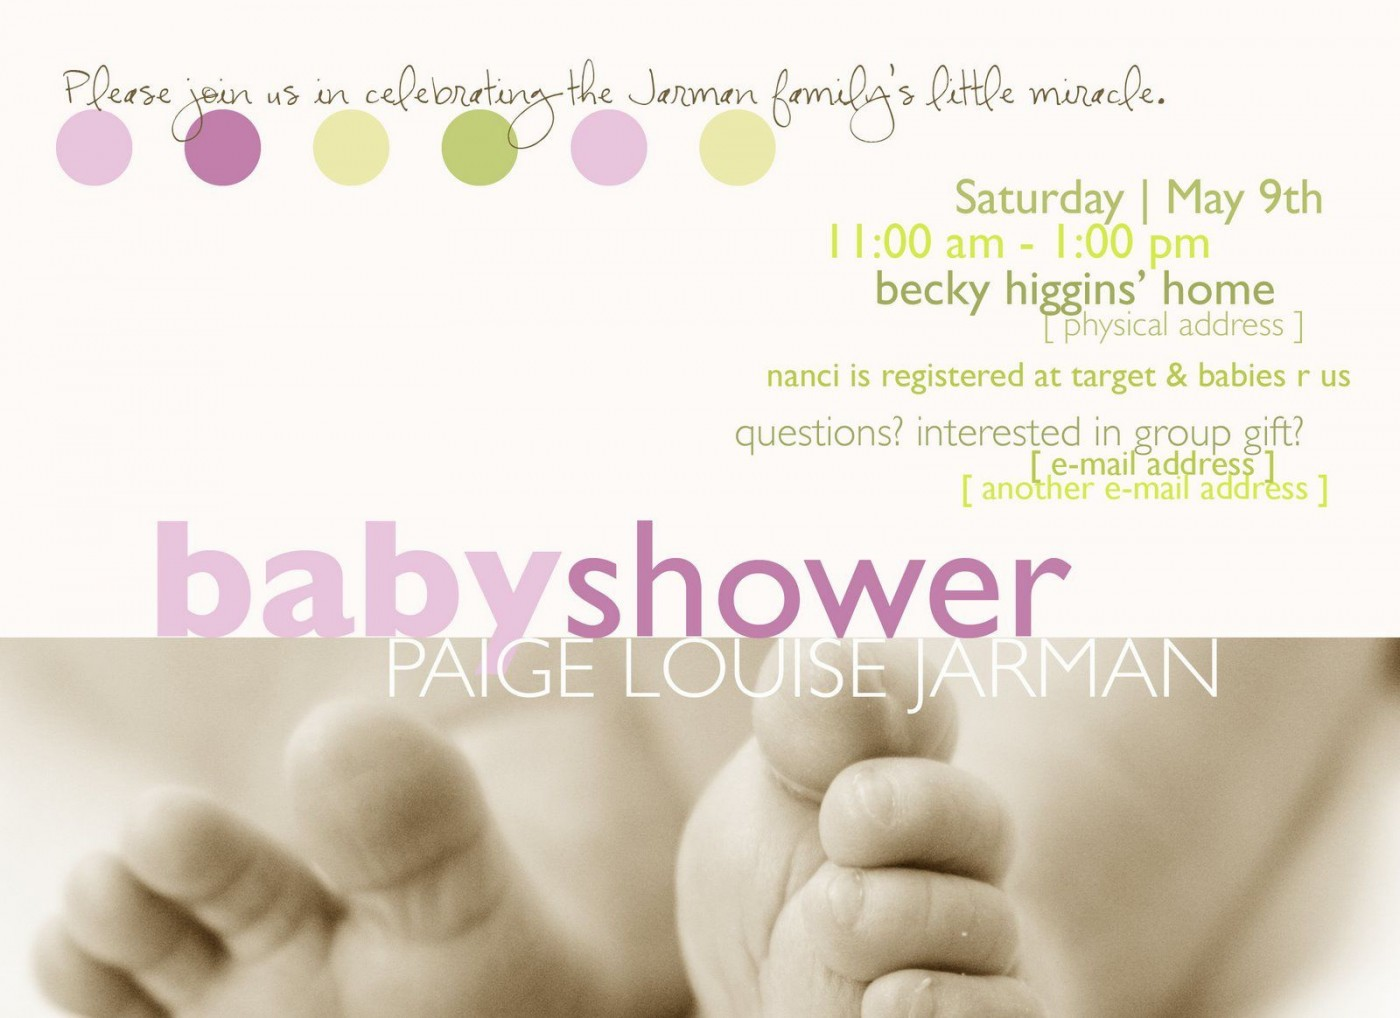 002 Archaicawful Microsoft Word Invitation Template Baby Shower Highest Quality  M Invite Free1400